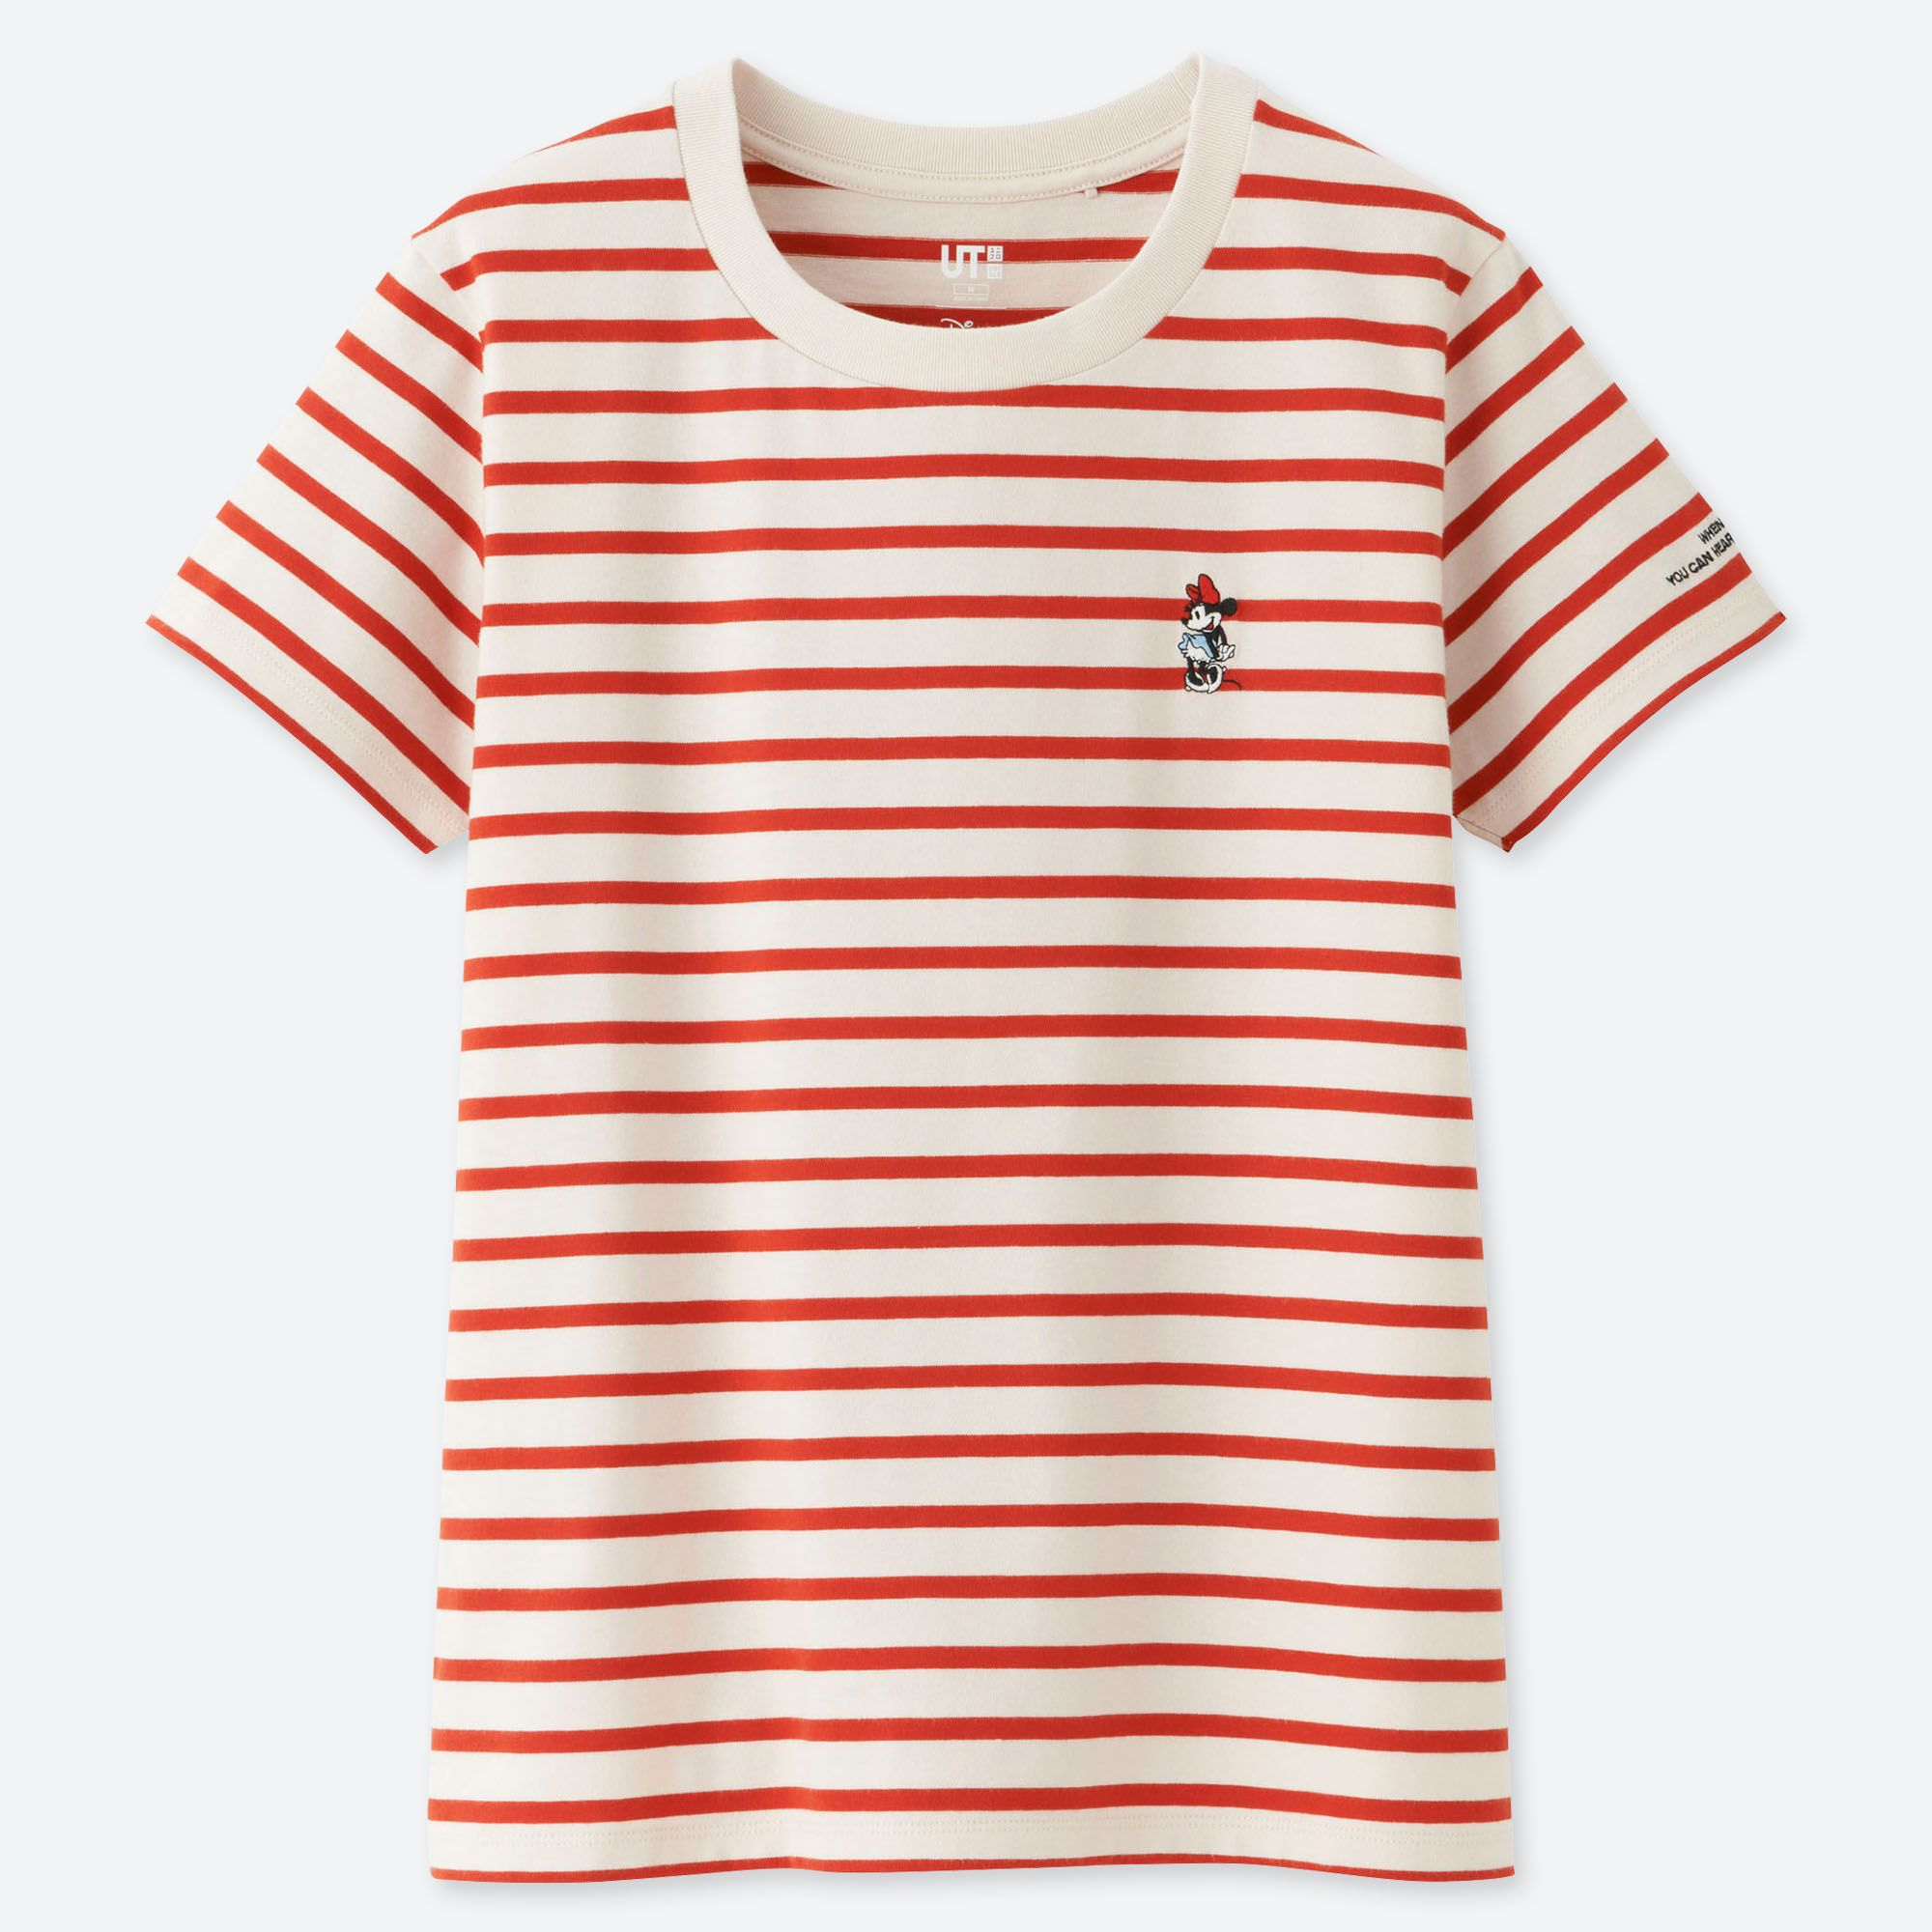 Celebrate Mickey Short Sleeve Graphic T Shirt by Uniqlo